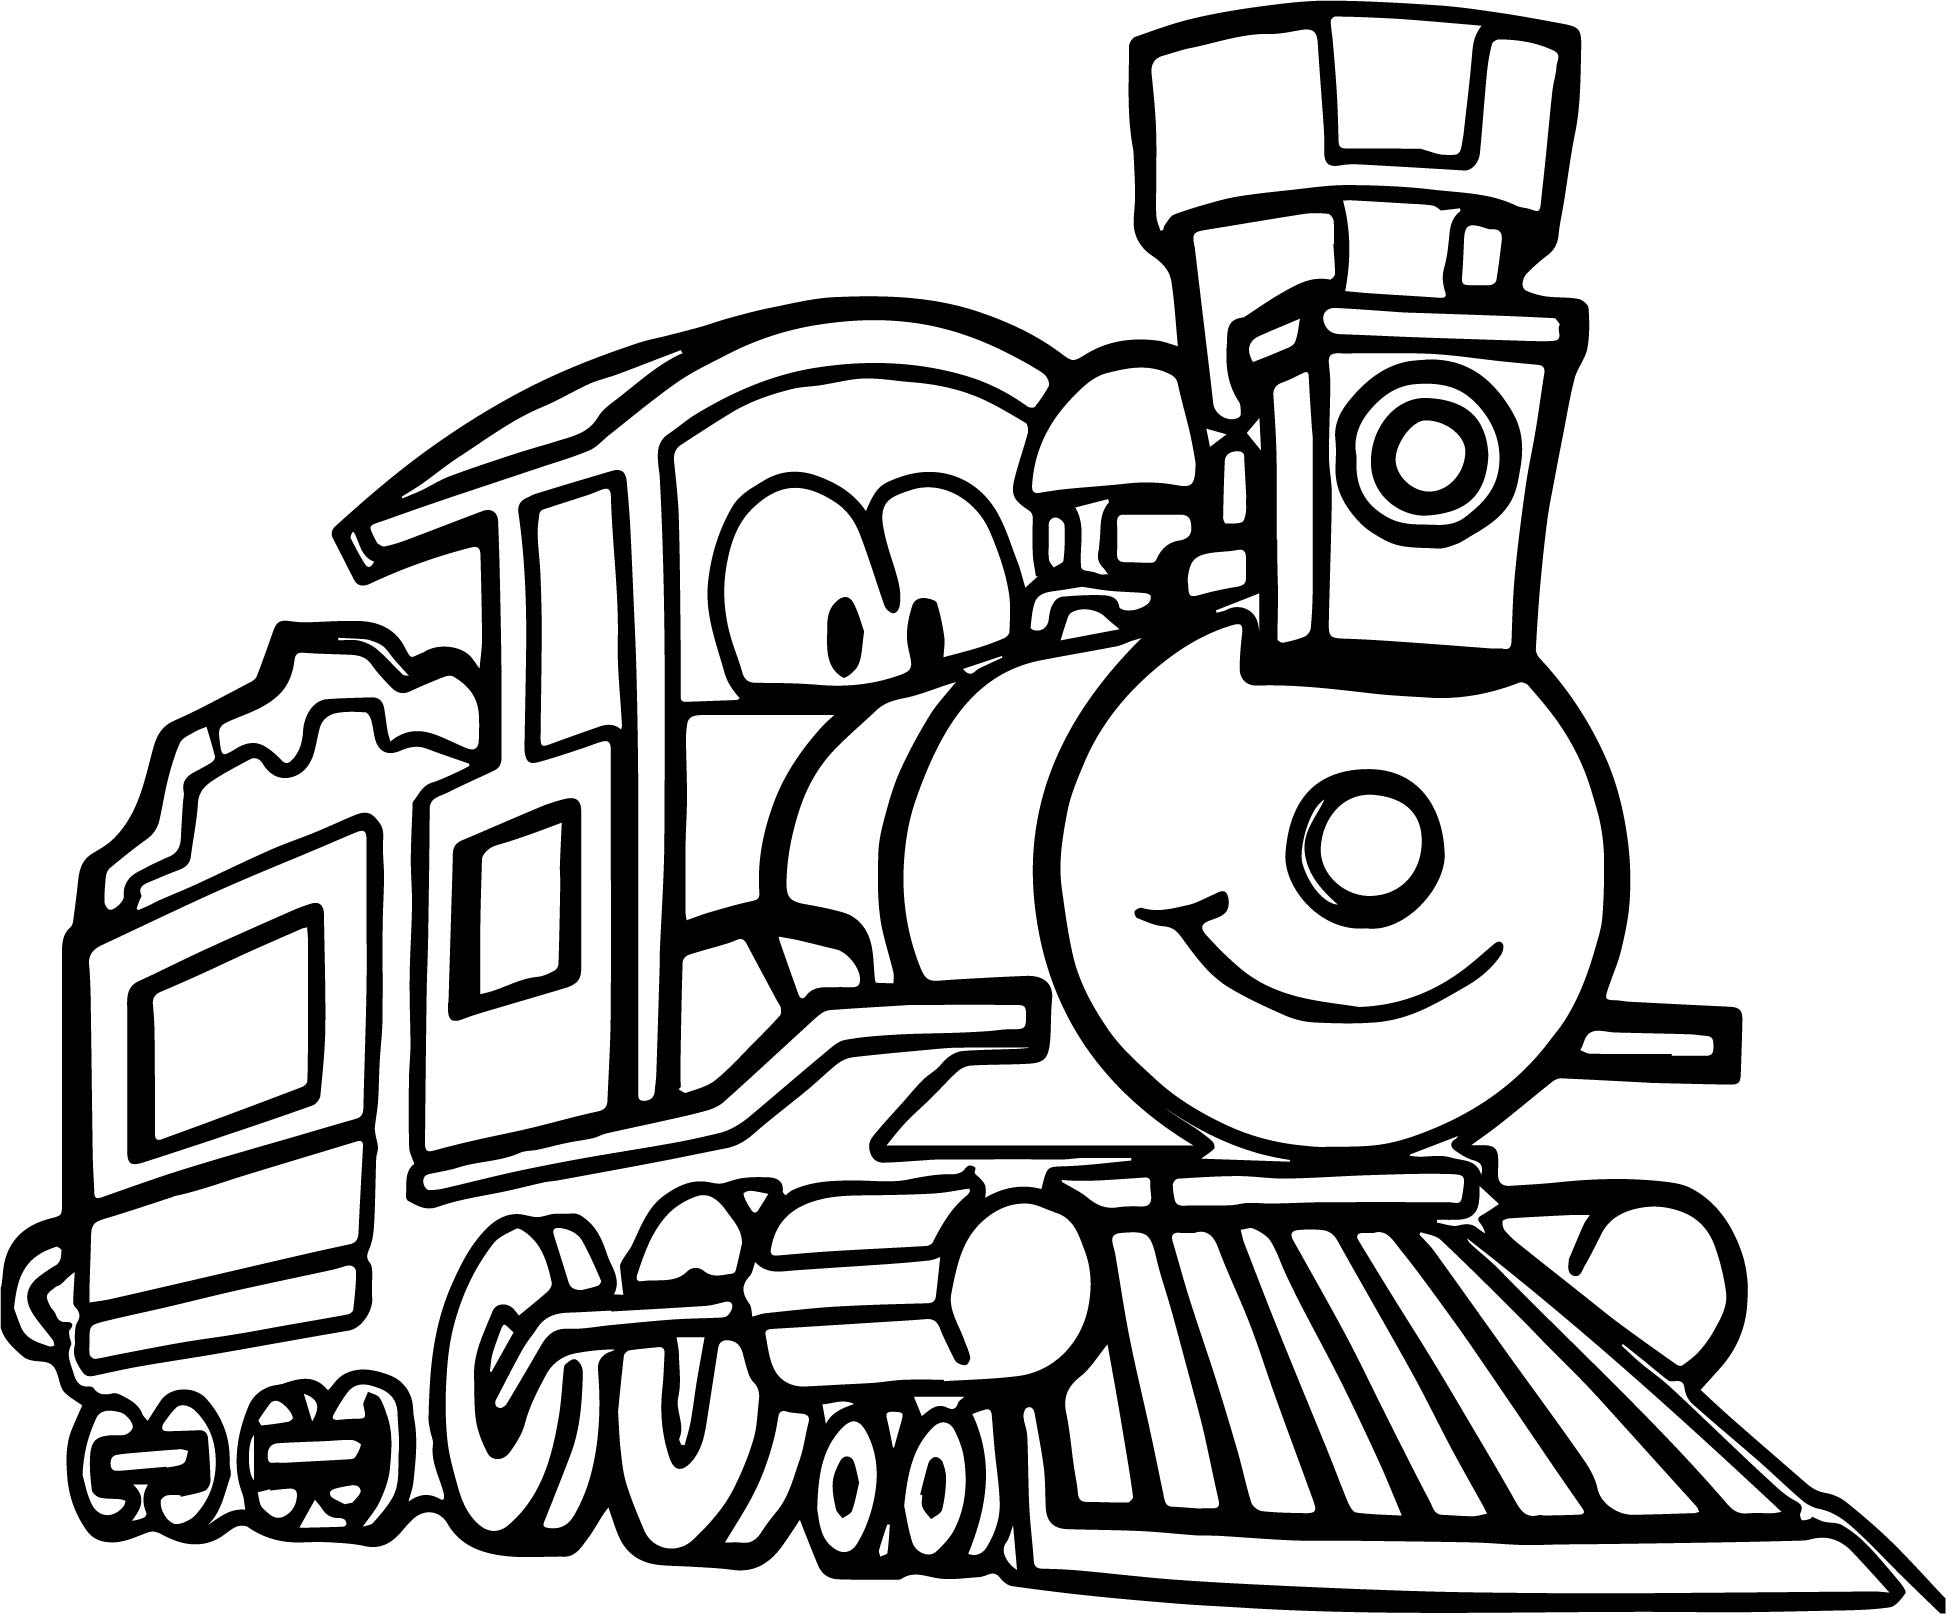 trains coloring pages free printable train coloring pages for kids coloring trains pages